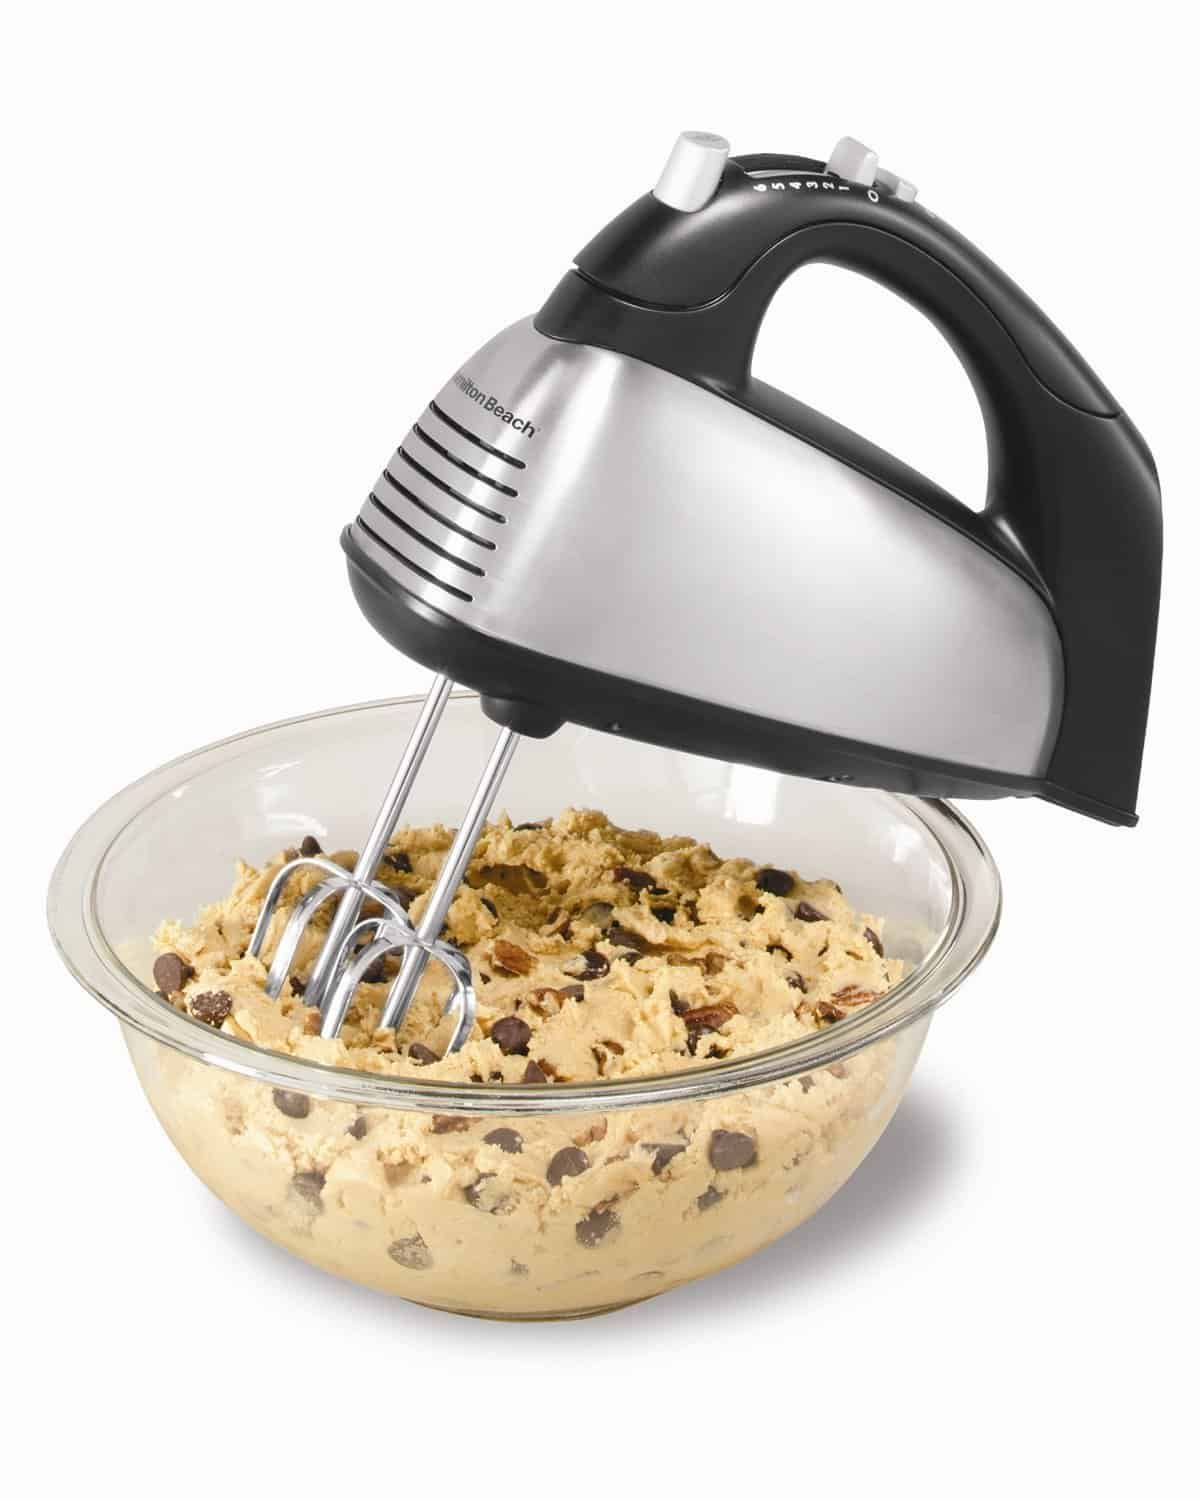 Find The Best Hand Mixer With Our Reviews Appliances